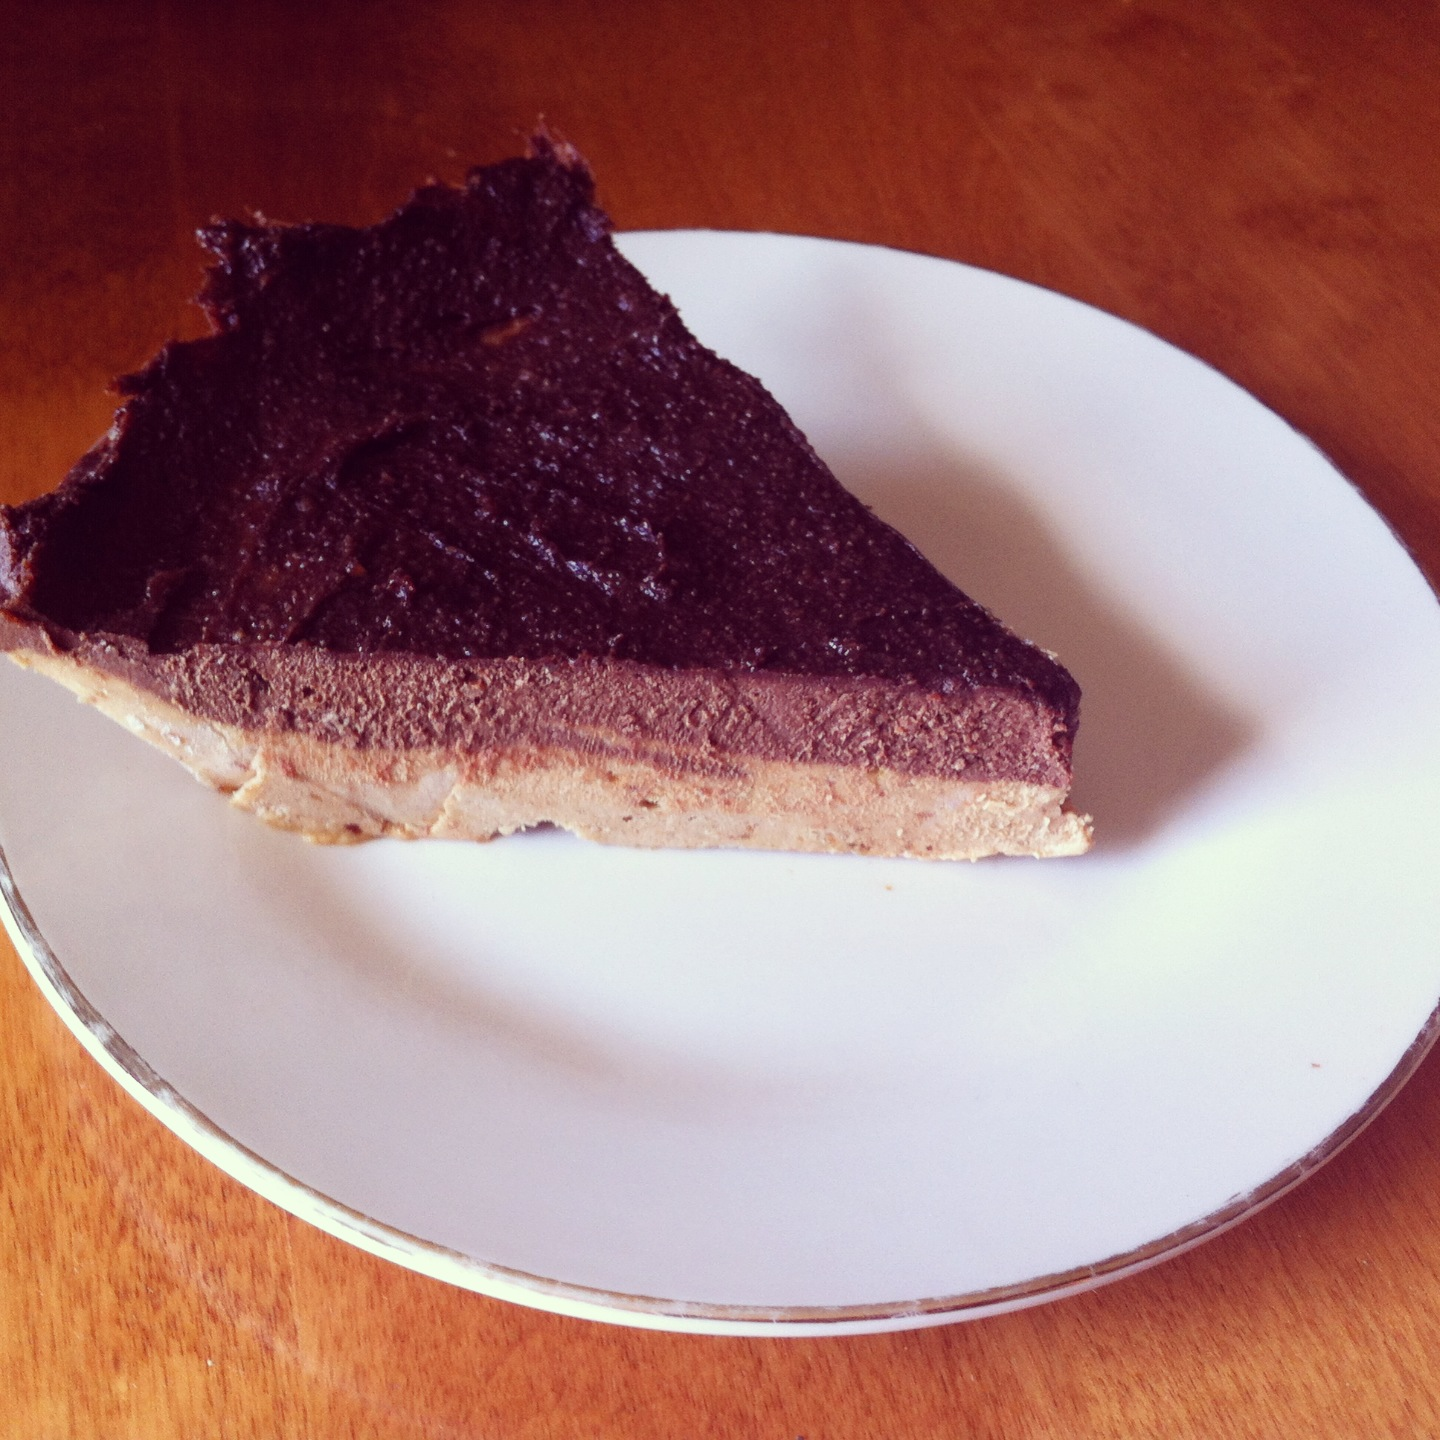 Vegan, Dessert, Dairy Free, Gluten Free, Recipes, Healthy, Low Carb,